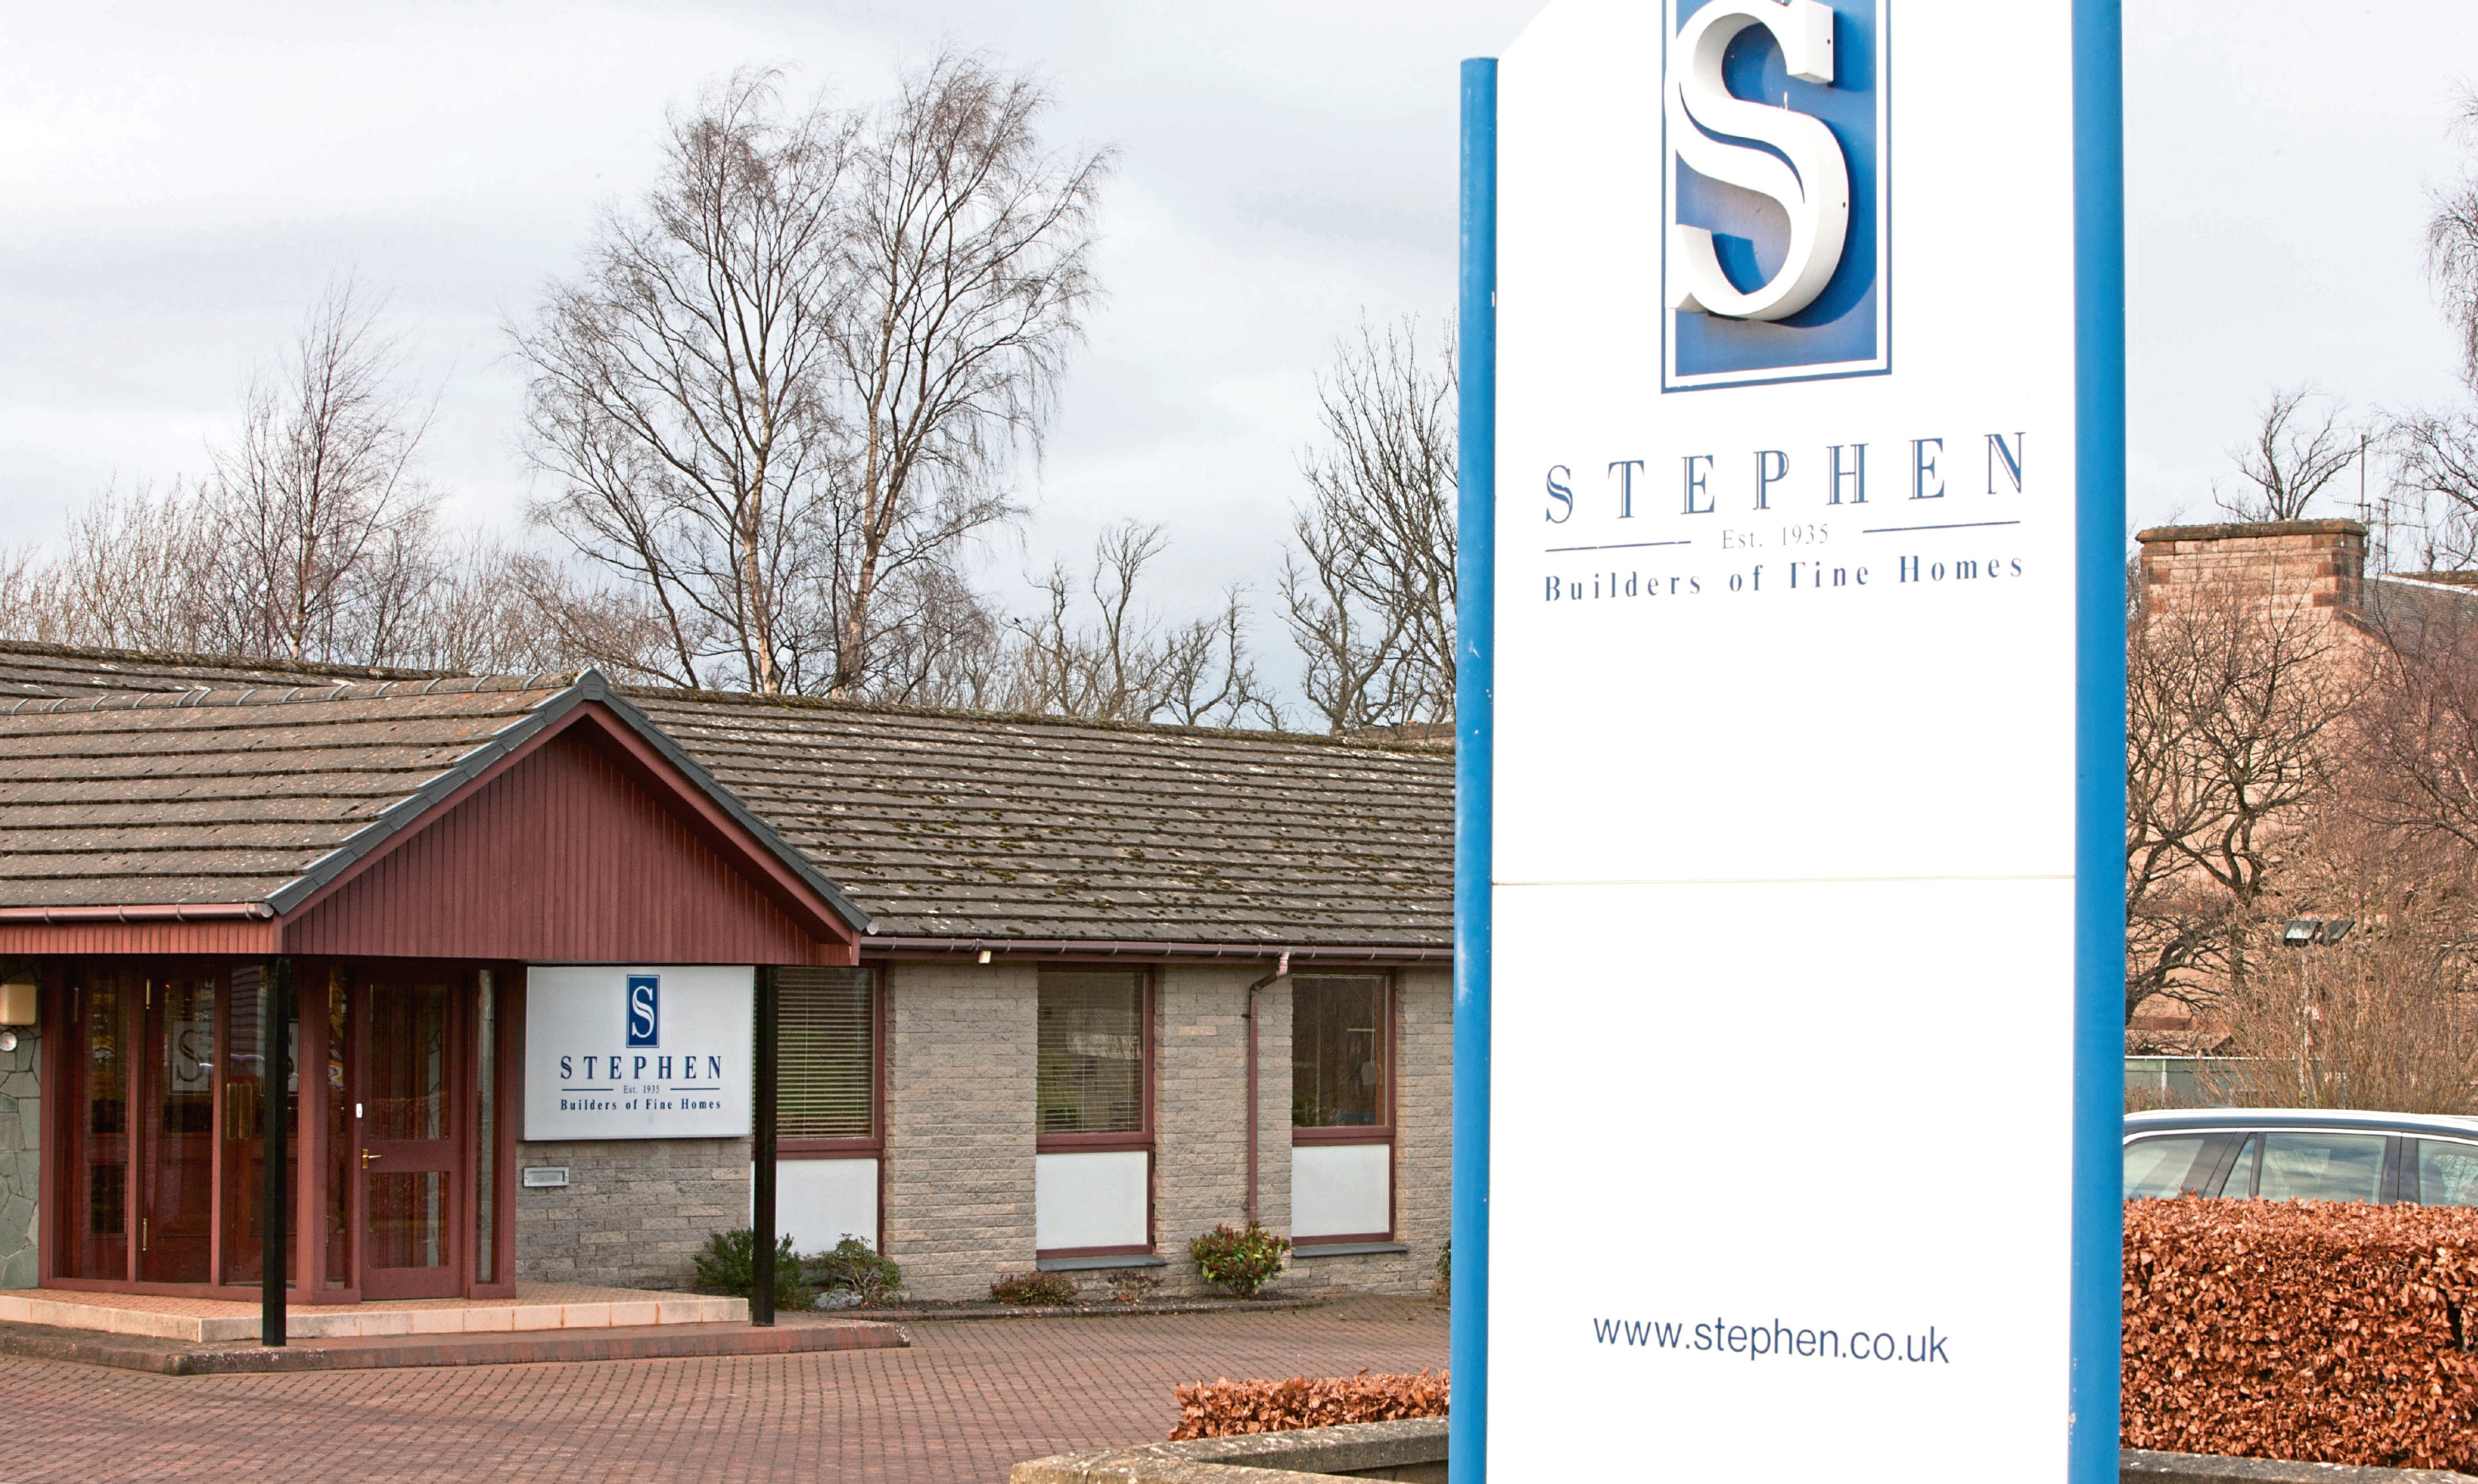 Stephen's offices on Edinburgh Road, Perth.